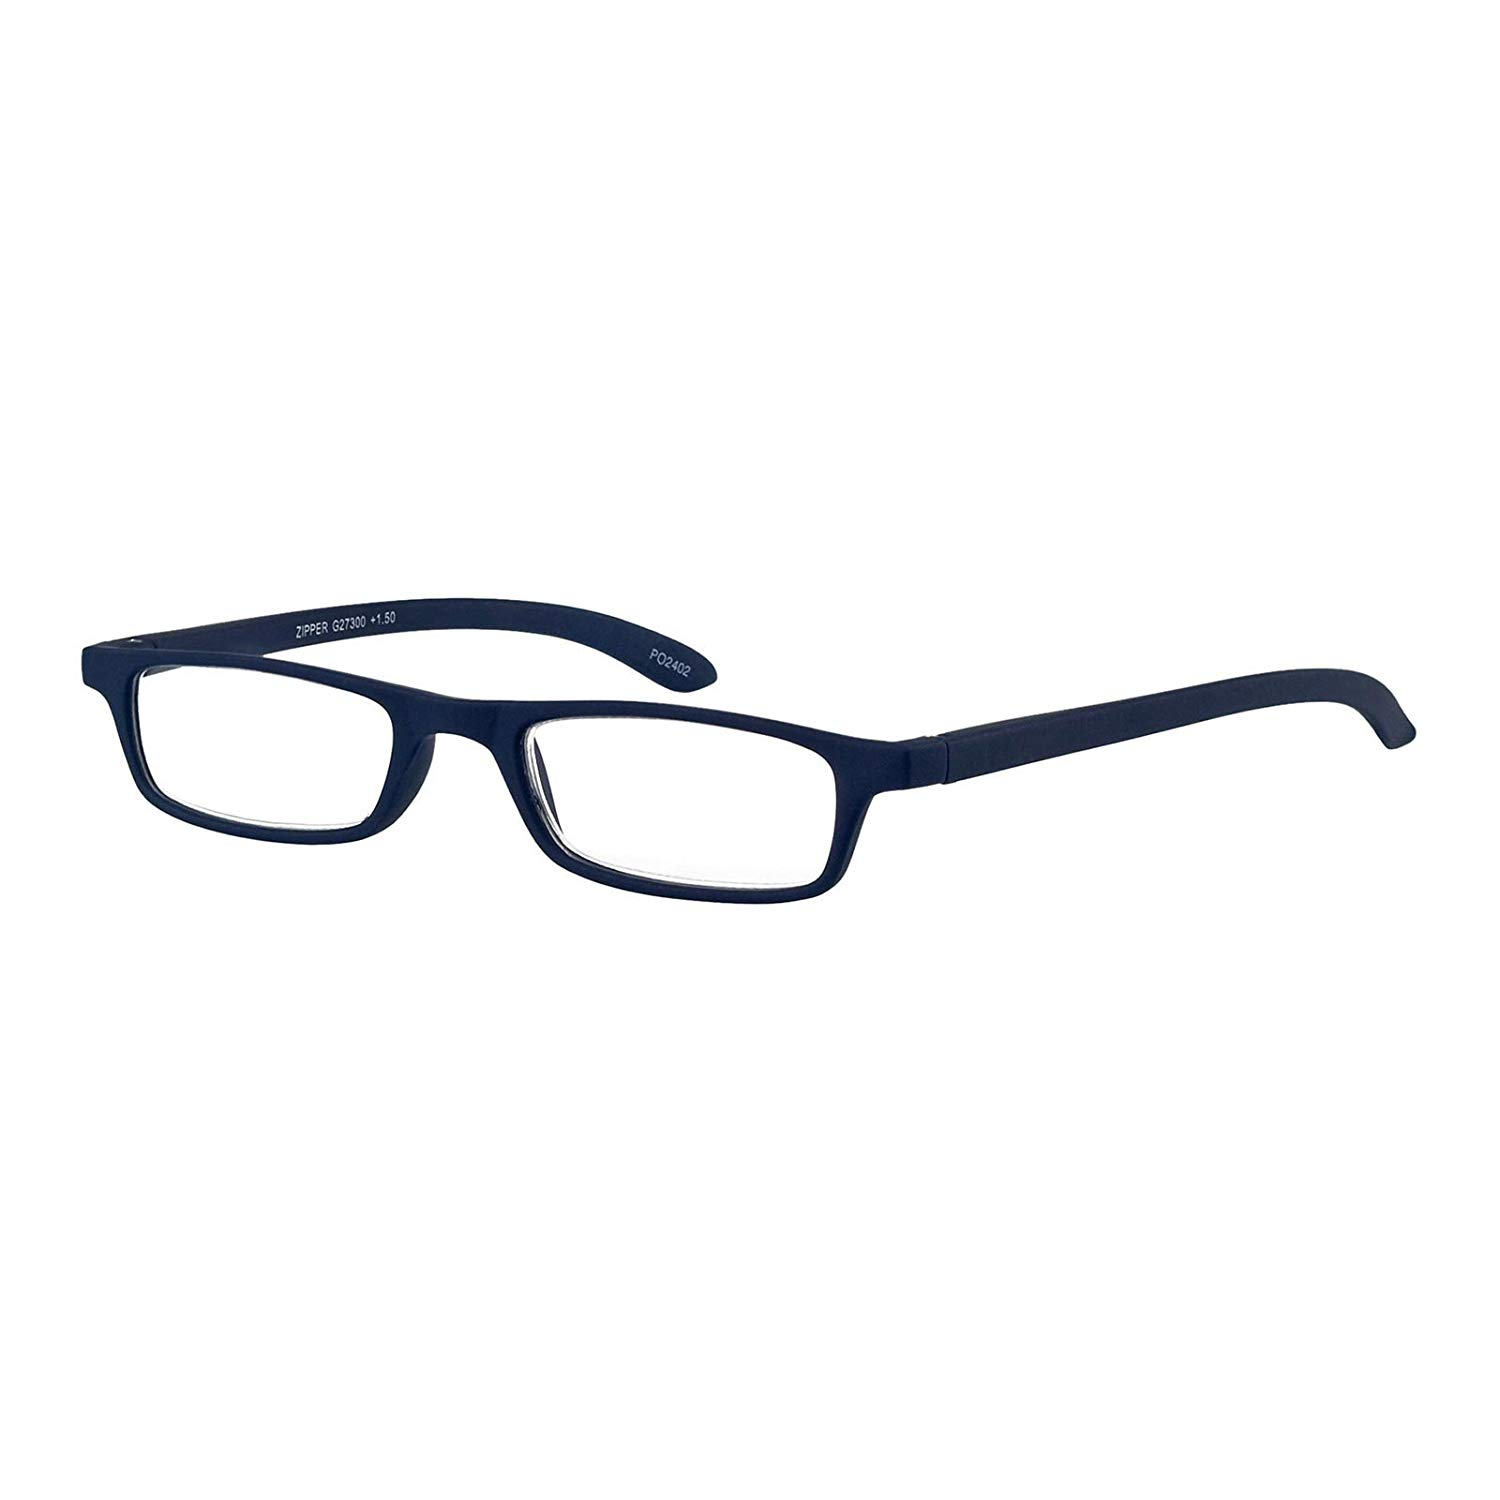 f097838cf0 Get Quotations · I NEED YOU Rectangular Reading Glasses Blue Zipper Designer  Frames For Men   Women Spring Hinge